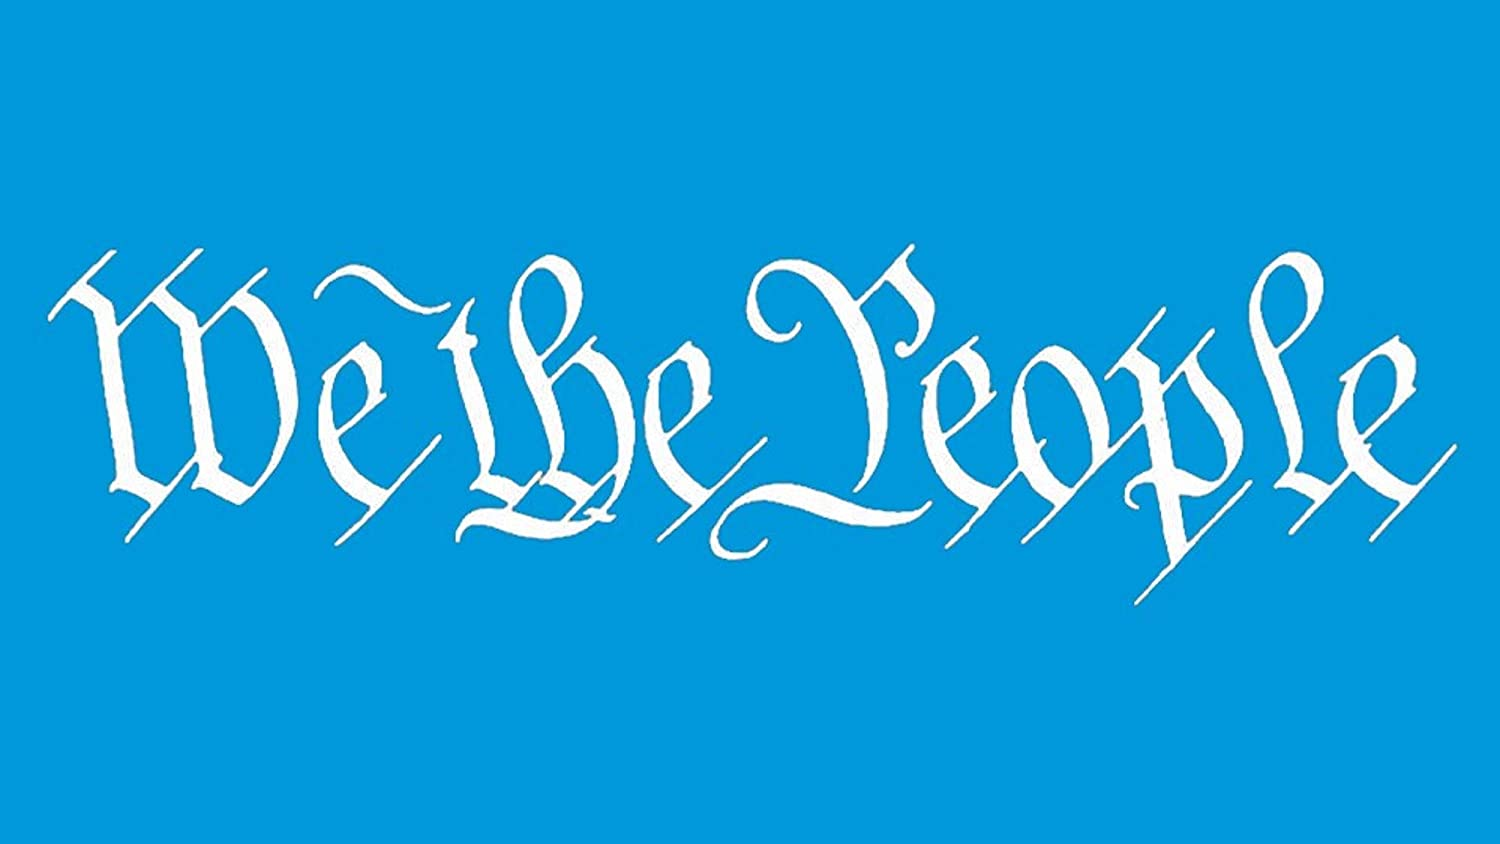 30 Rdecals We The People Decal//Sticker Various Sizes Second Amendment